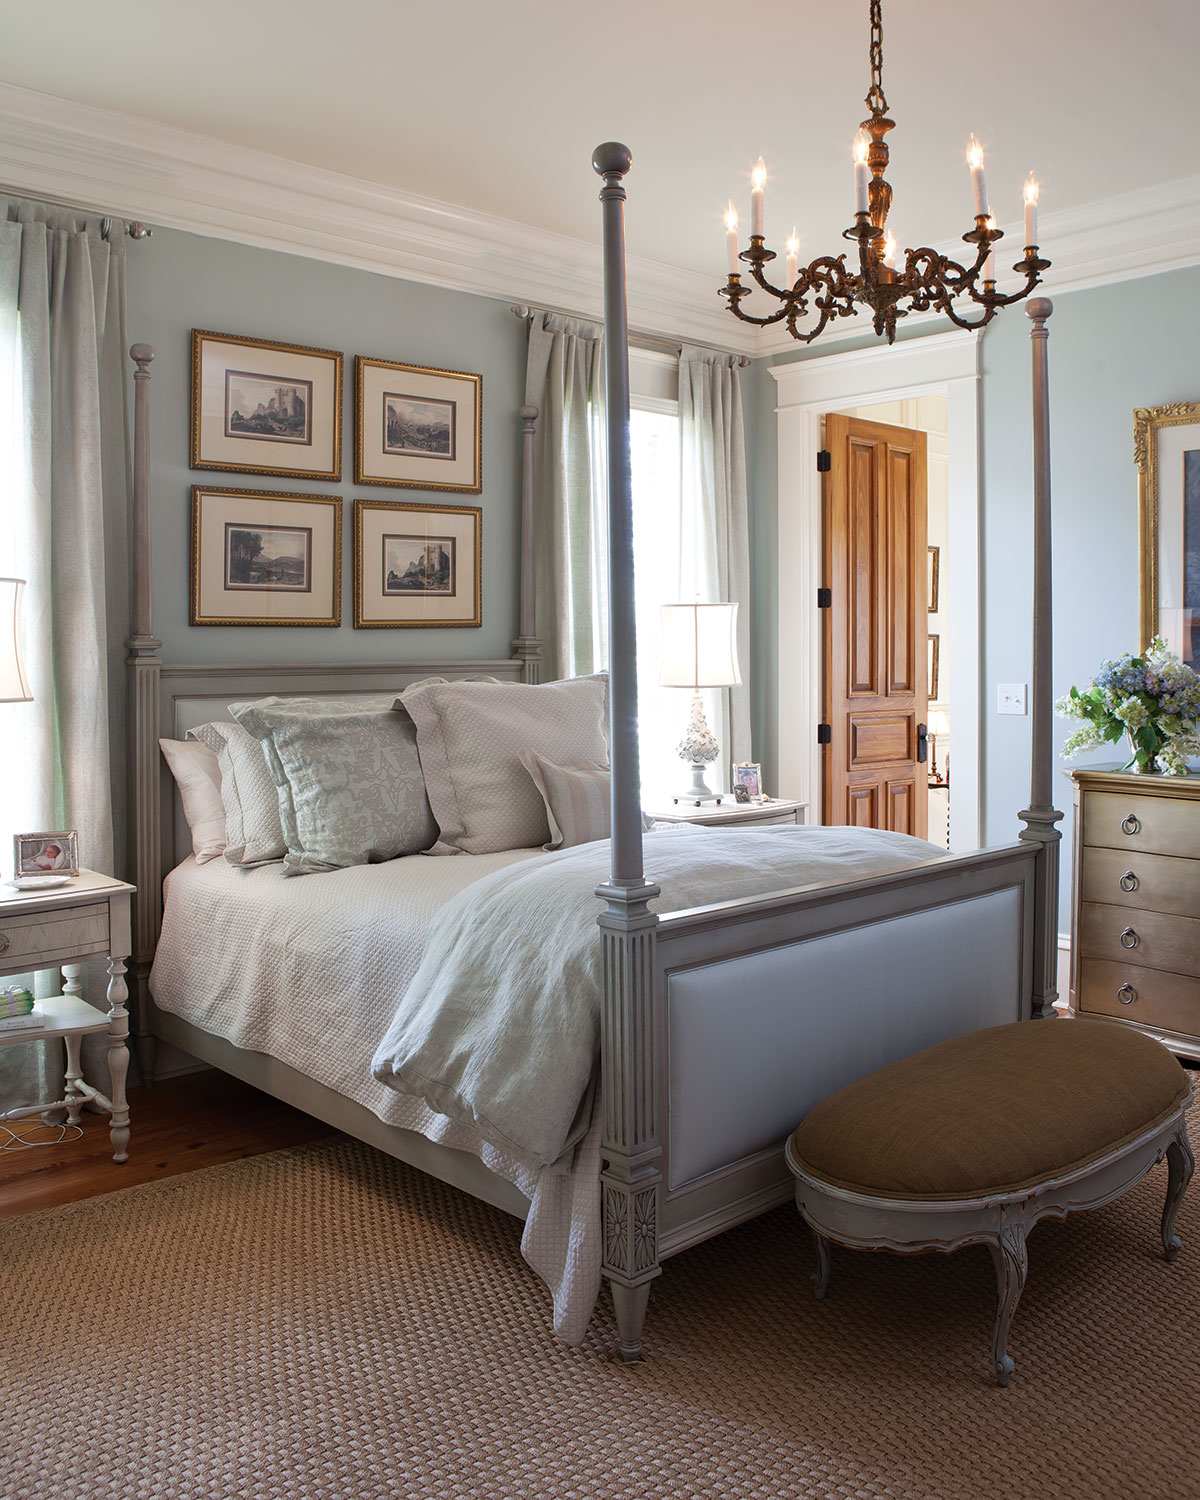 10 dreamy southern bedrooms page 3 of 10 southern lady for Bedroom decorating gallery